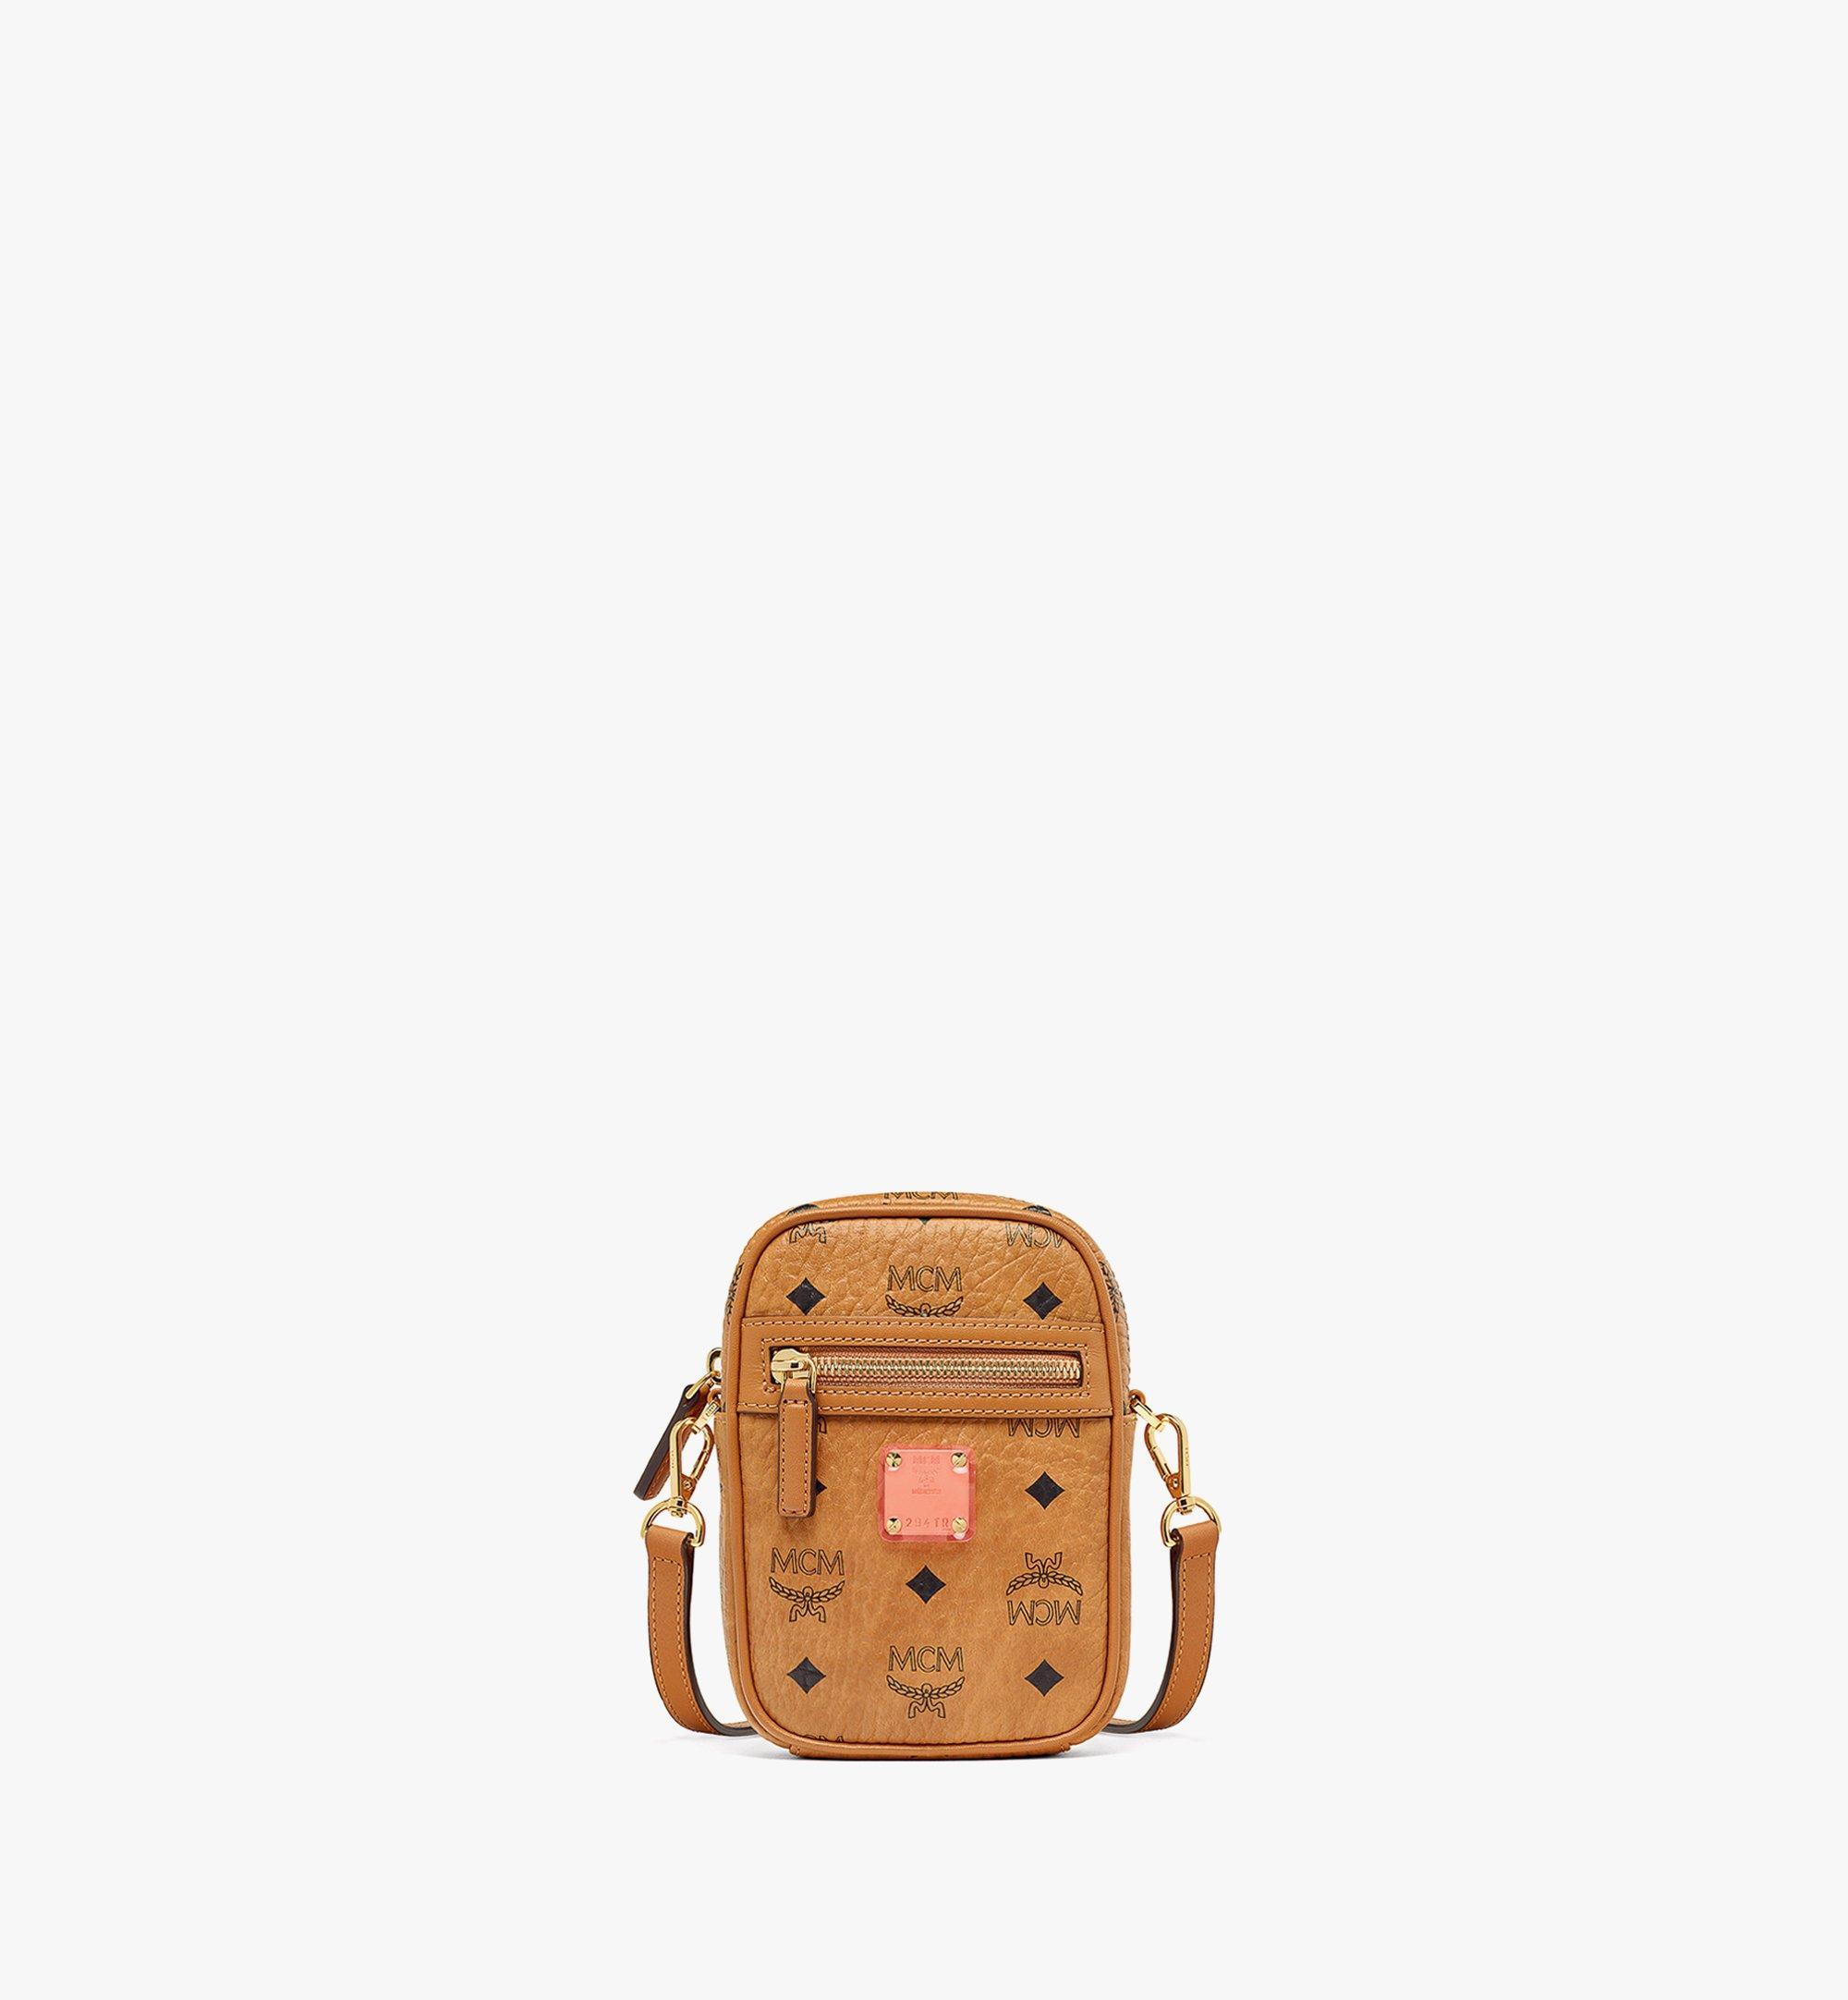 MCM Upcycling Project Crossbody in Visetos Cognac MMRAAUP01CO001 Alternate View 1